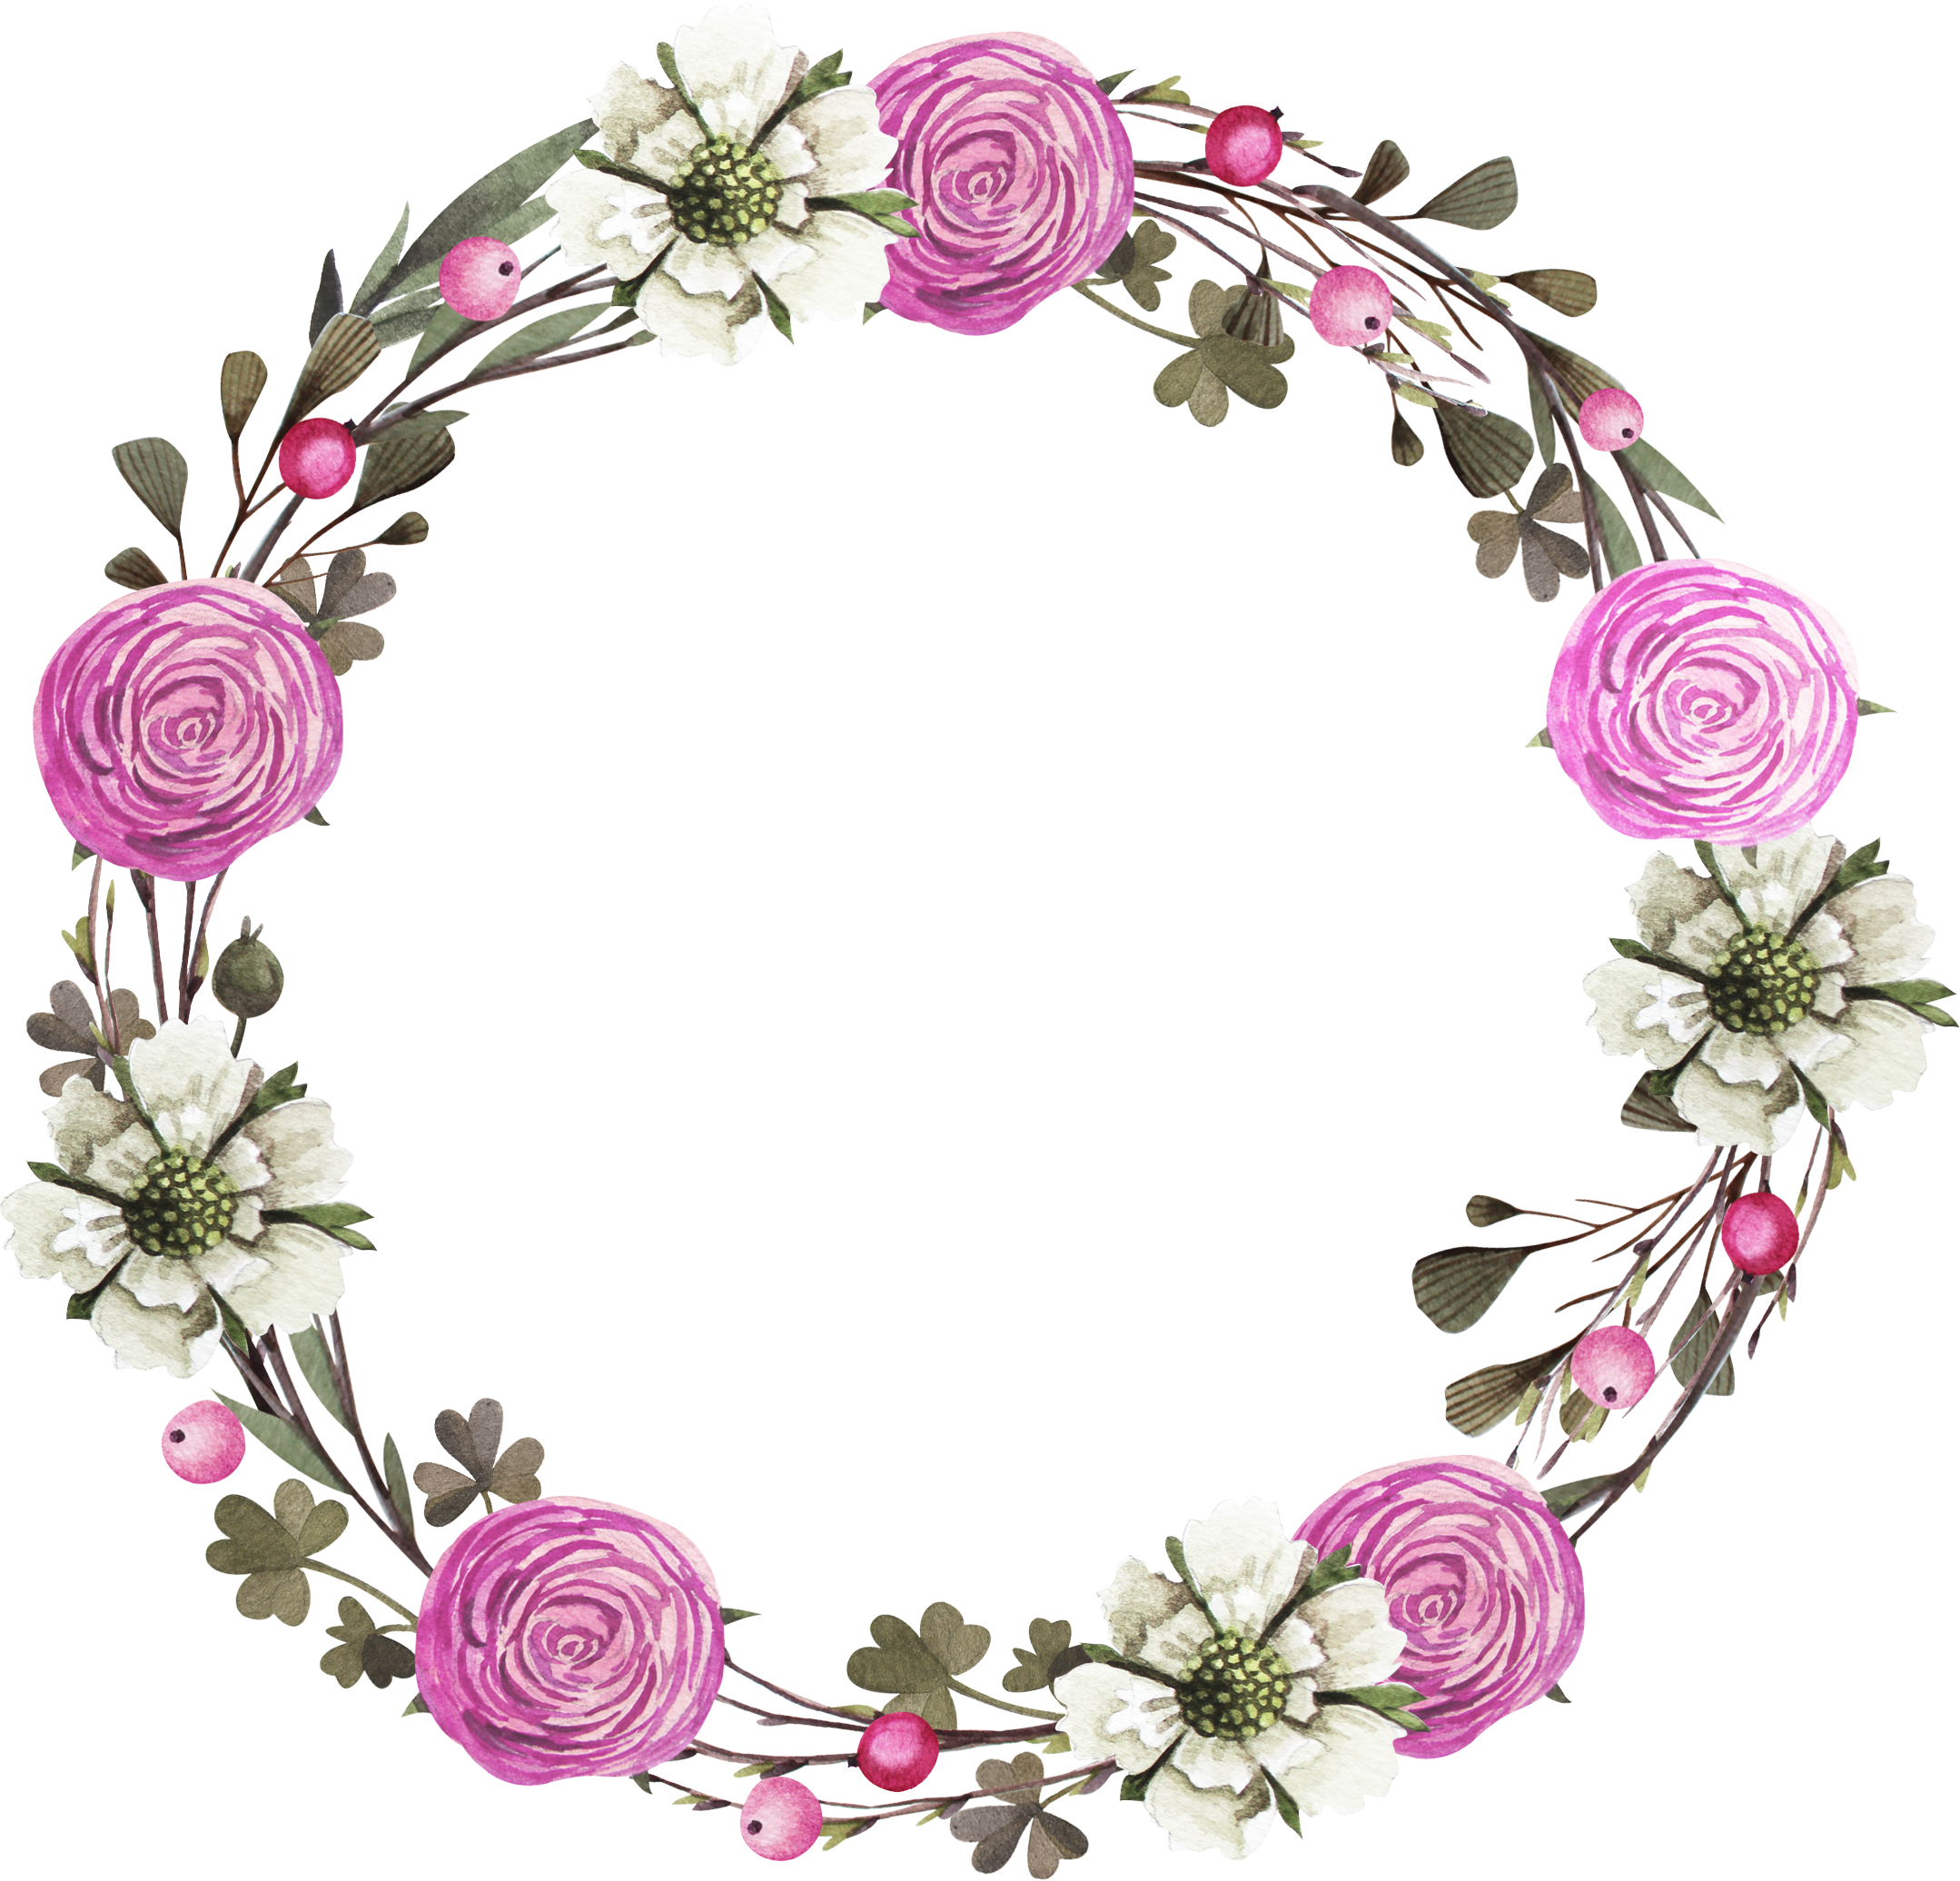 Flower wreath clipart free picture royalty free download Floral design Wreath Rose Clip art - Hand painted purple roses 2158 ... picture royalty free download